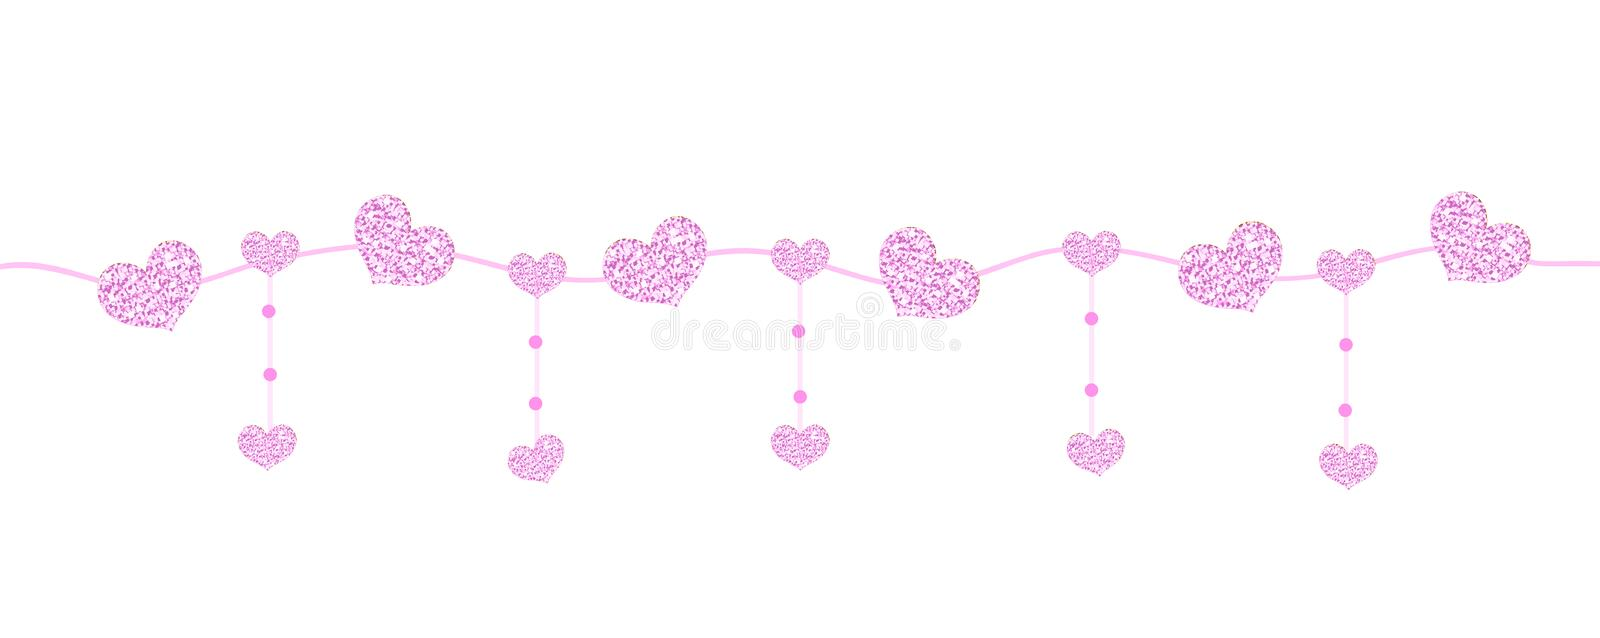 Happy Valentine`s day banner with hearts made of glitter. Brilliant horizontal borders. Romantic shining sparkling royalty free illustration